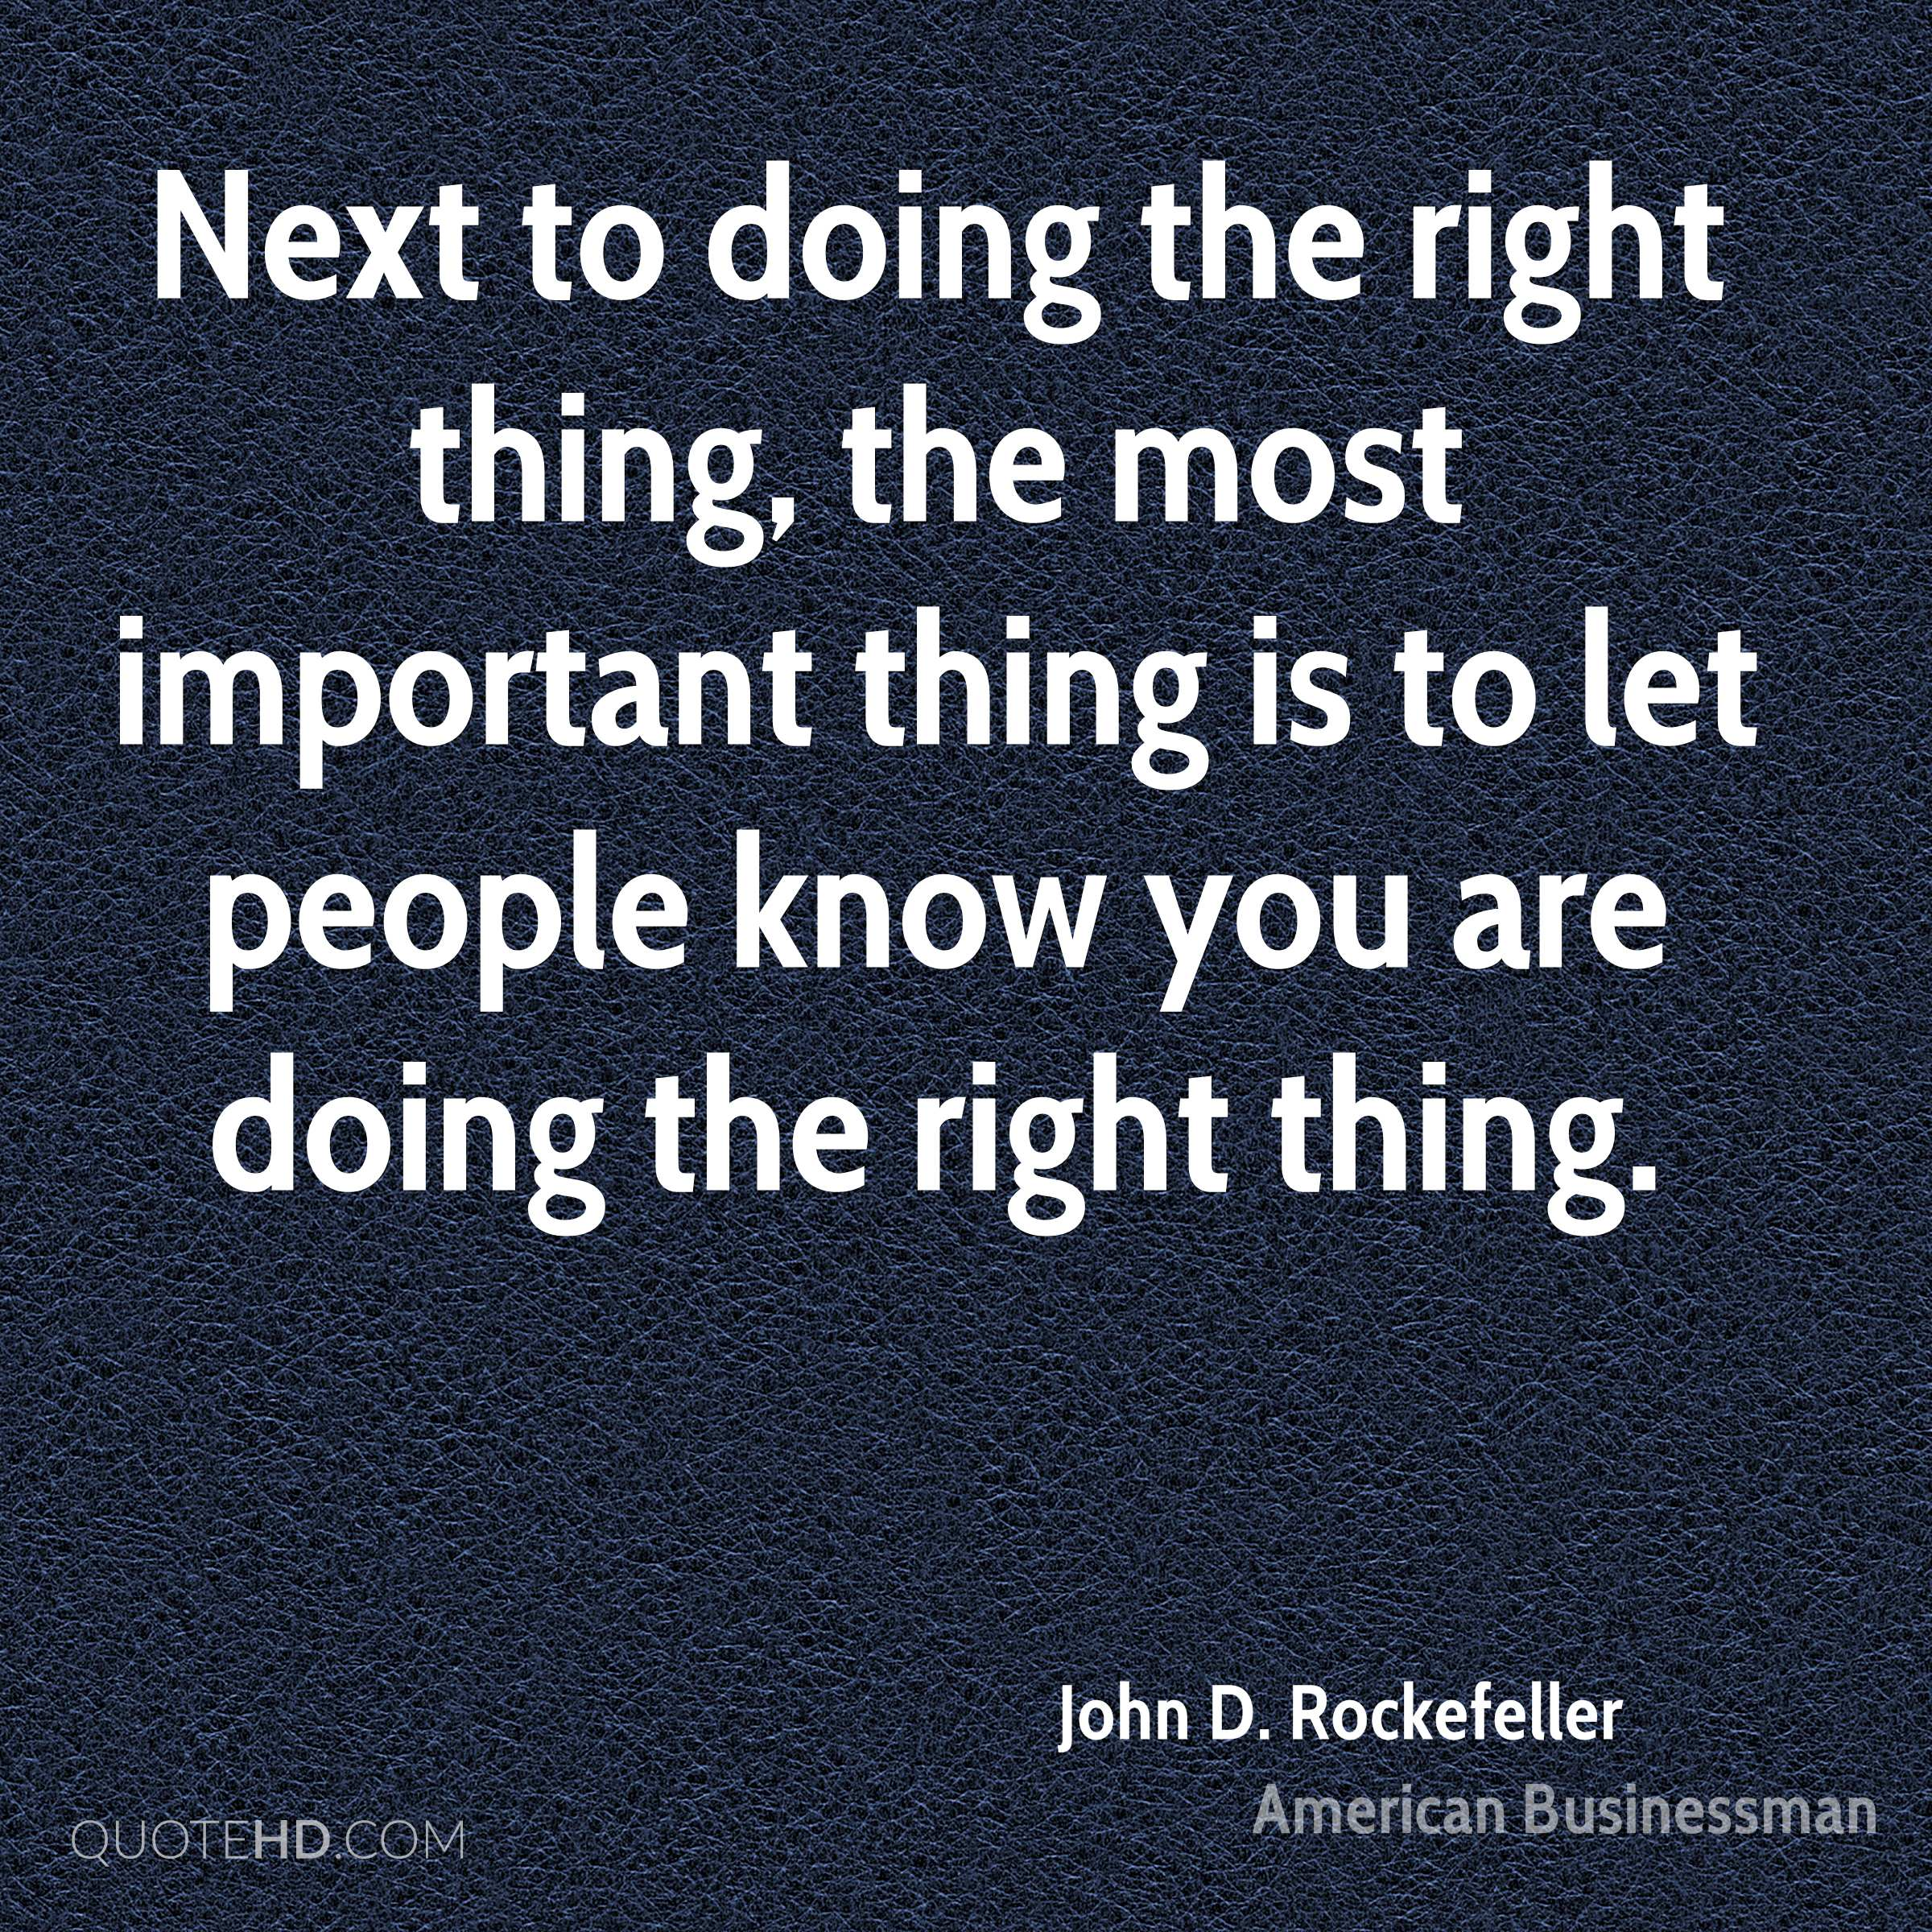 Next to doing the right thing, the most important thing is to let people know you are doing the right thing.